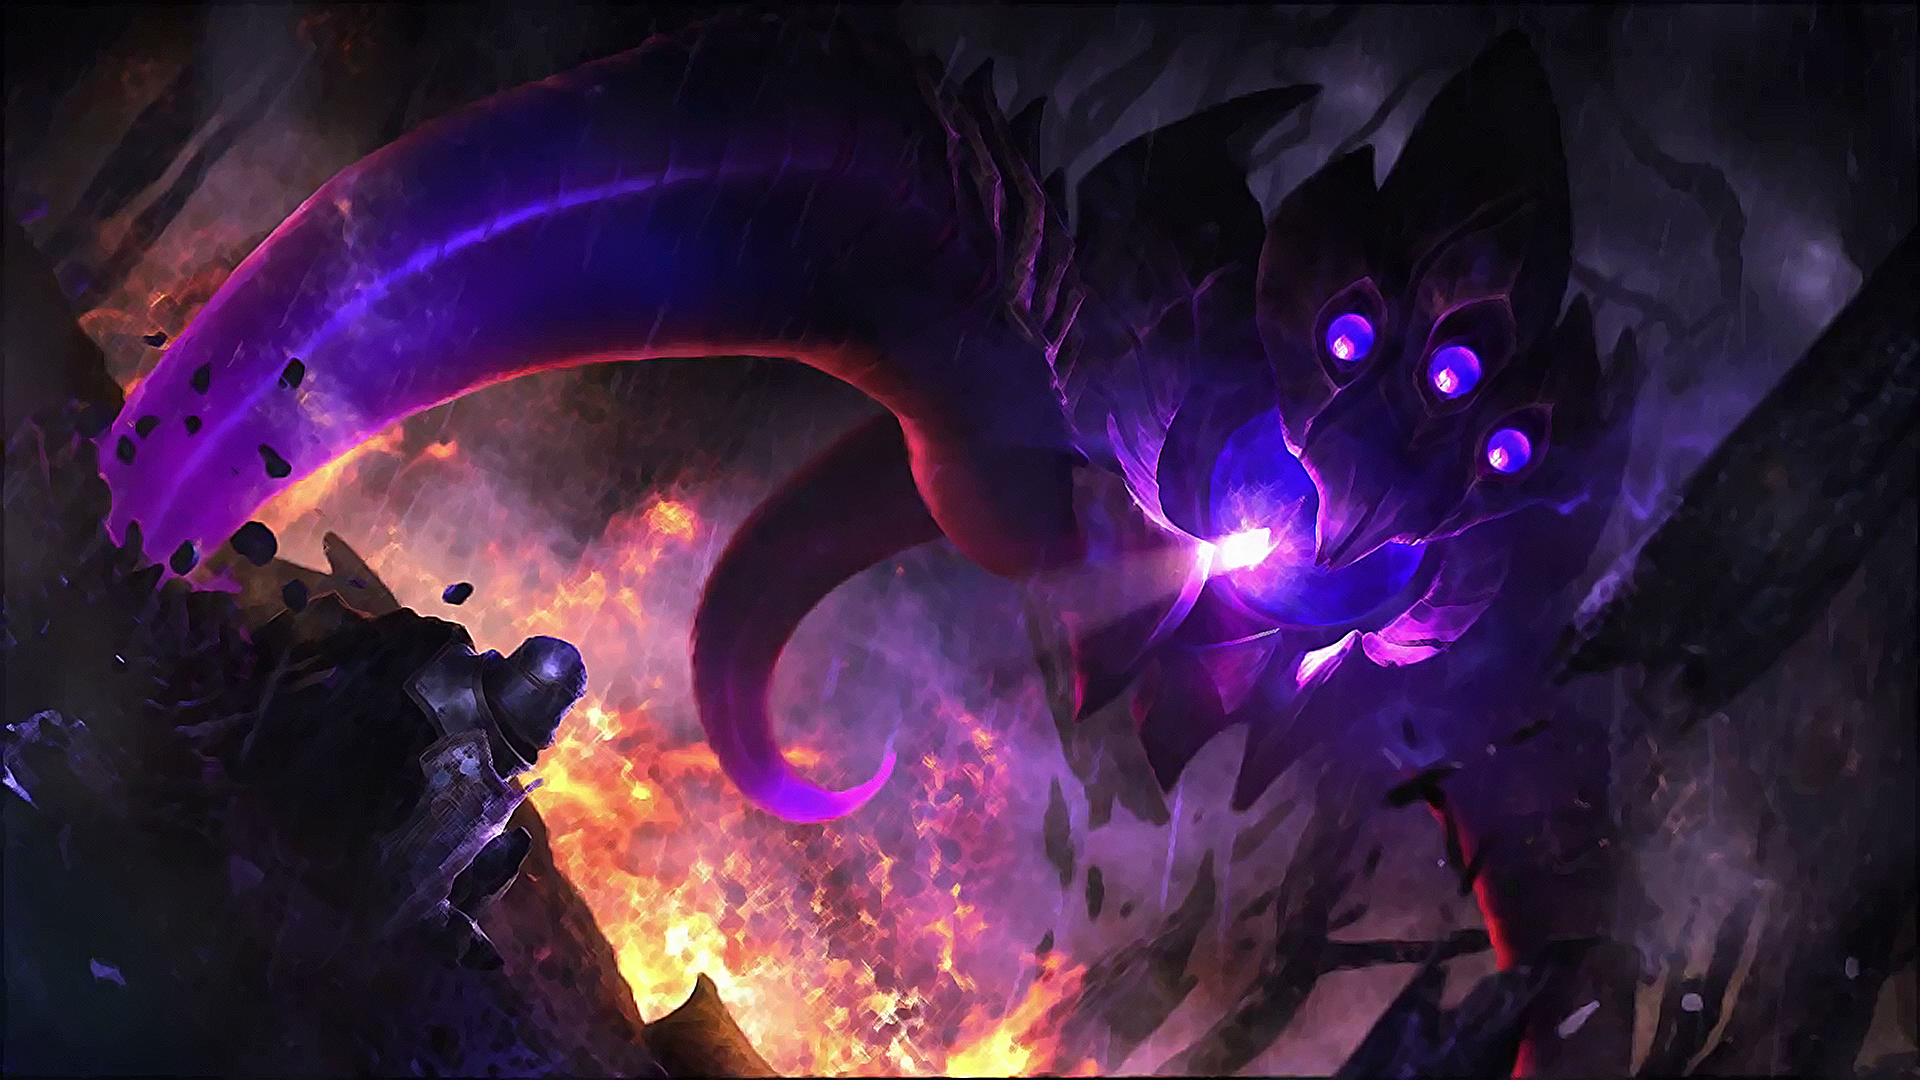 [Immagine: velkoz-lol-hd-wallpaper-1920x1080.jpg]